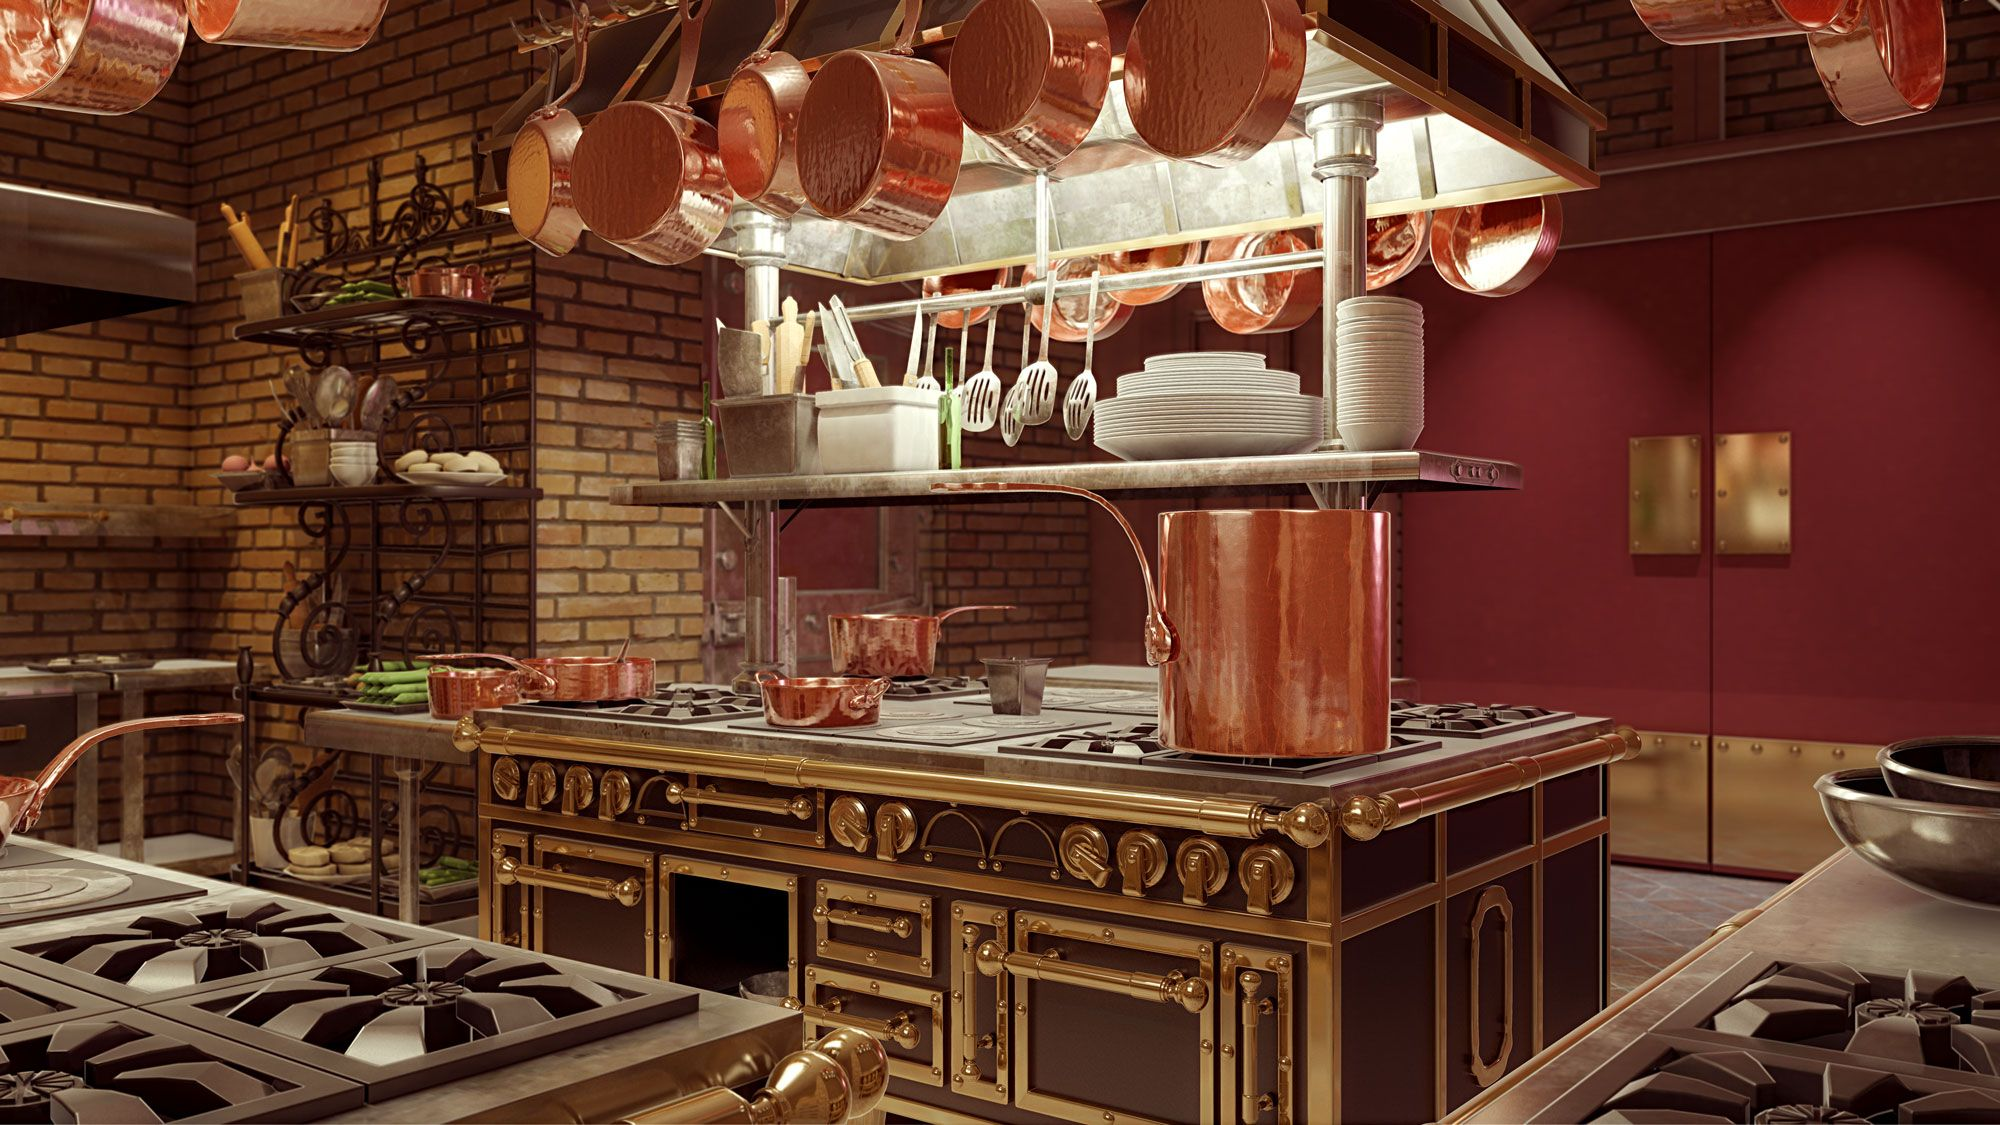 Ratatouille Background Google Search Concept Art